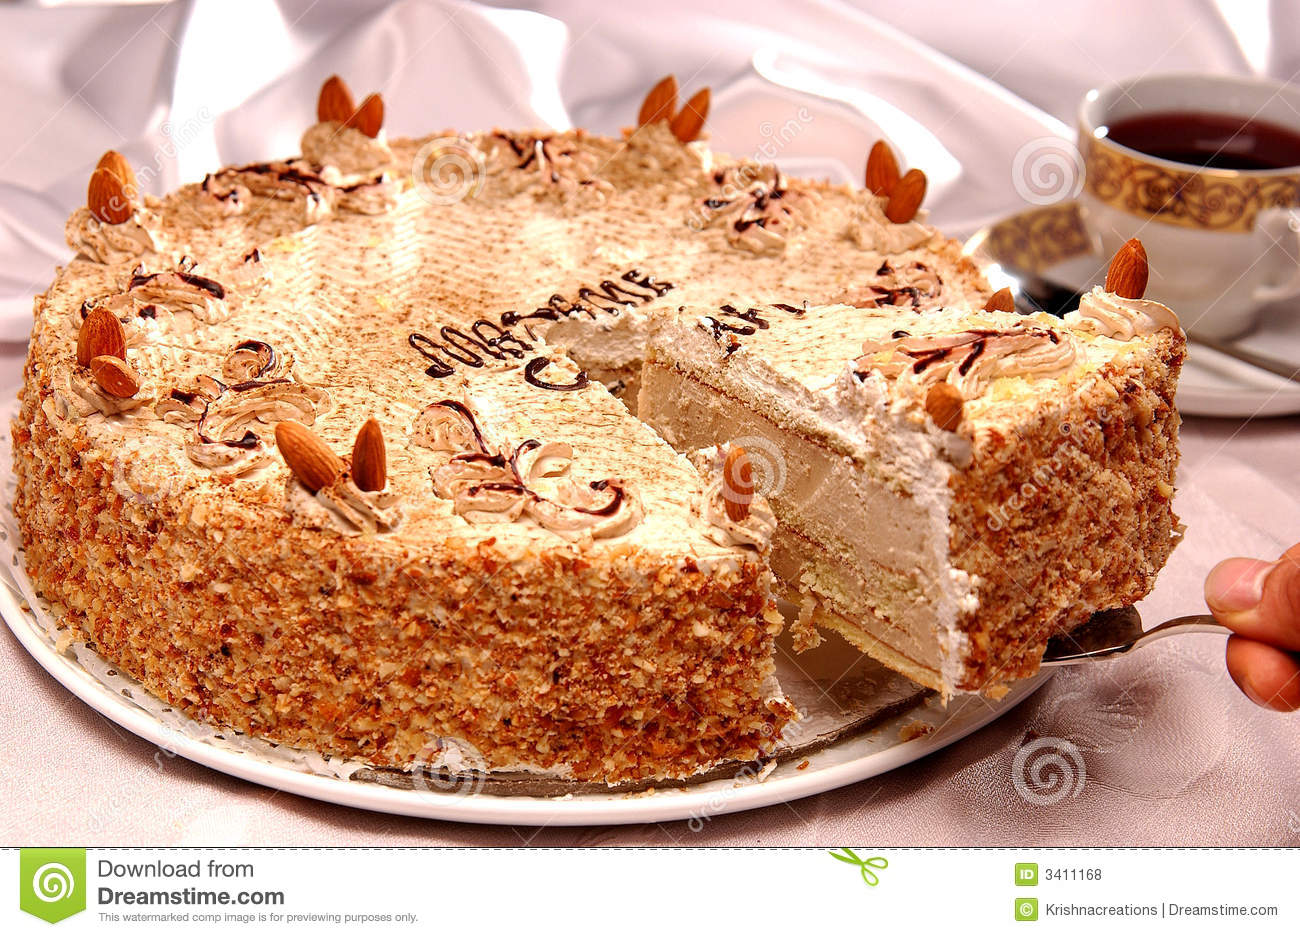 Cake and arabic food stock photo  Image of gift, ceremony